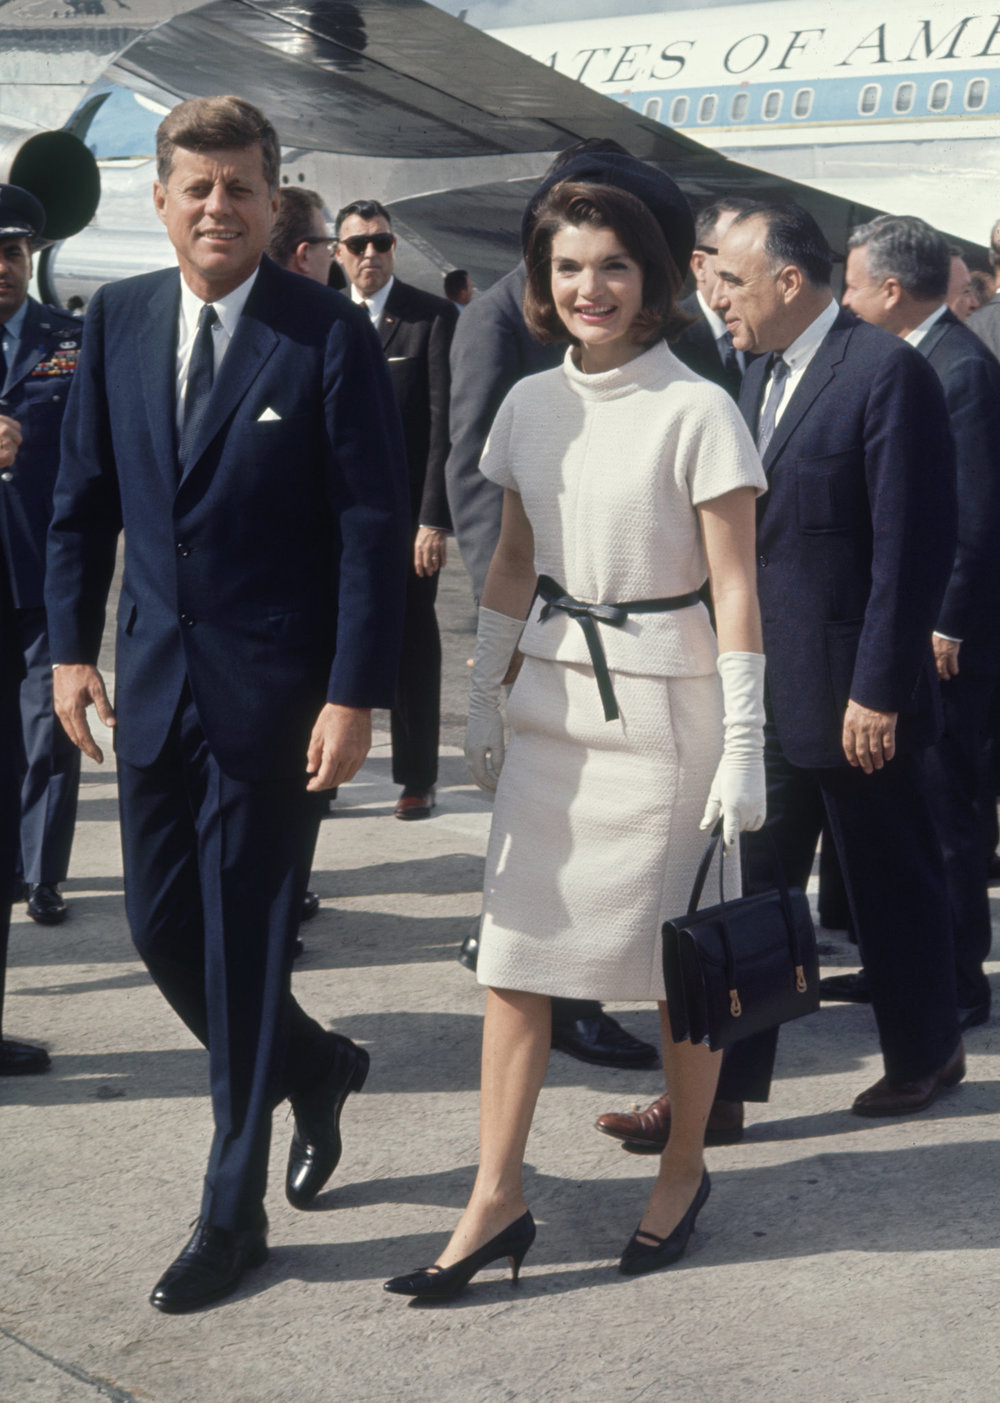 Mrs. Kennedy arriving in San Antonio wearing the white Chanel coat and skirt. Image: Art Rickerby/Time & Life Pictures, via Getty.